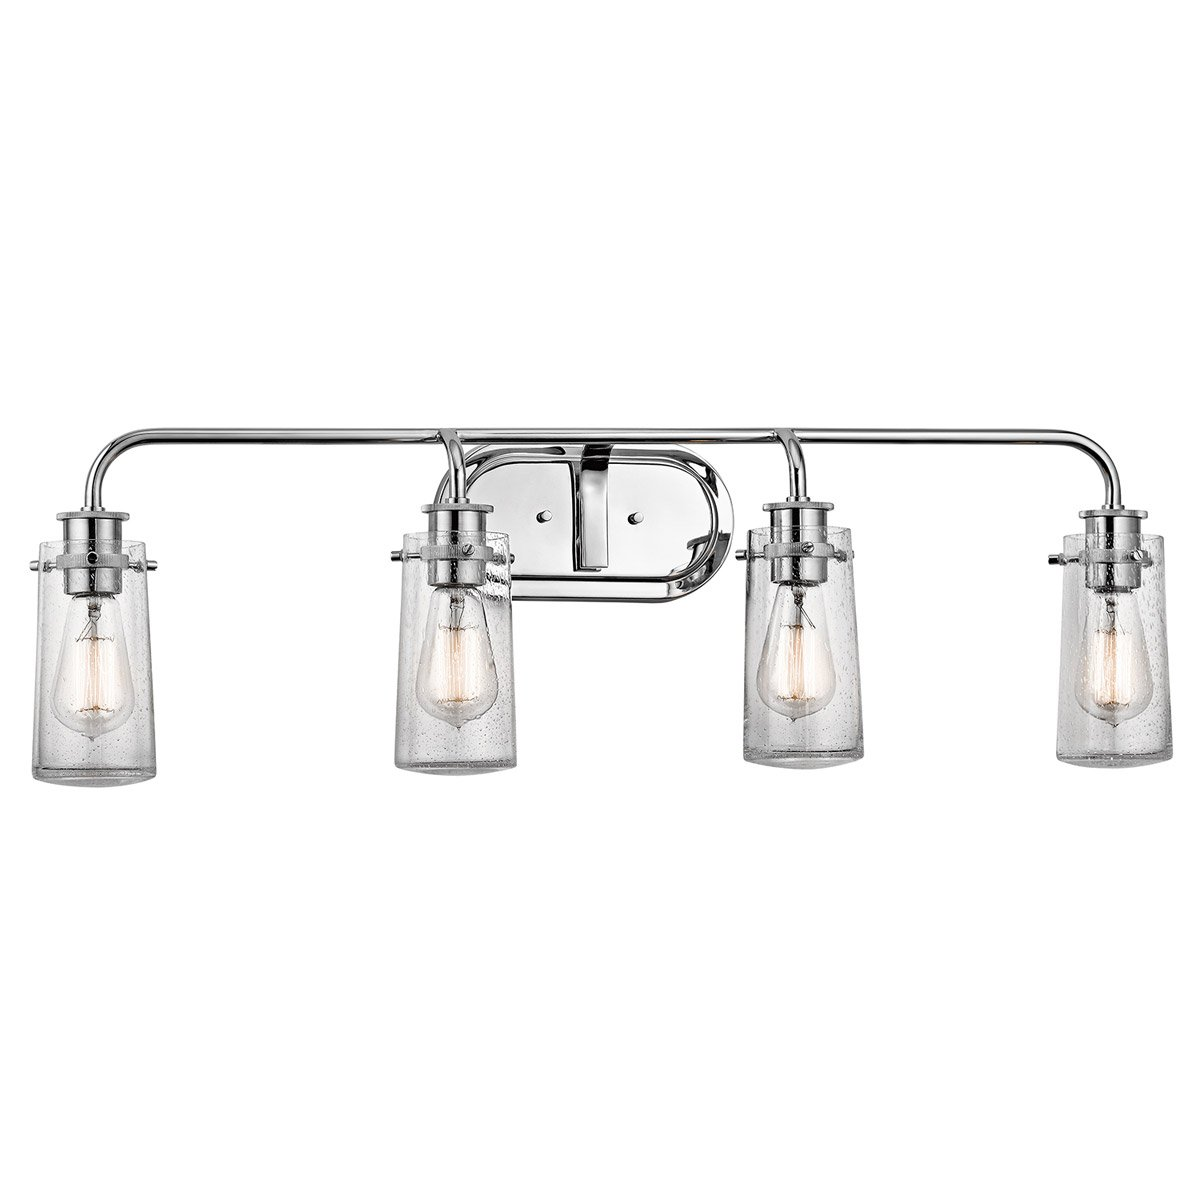 Kichler 45460CH Four Light Bath by Kichler